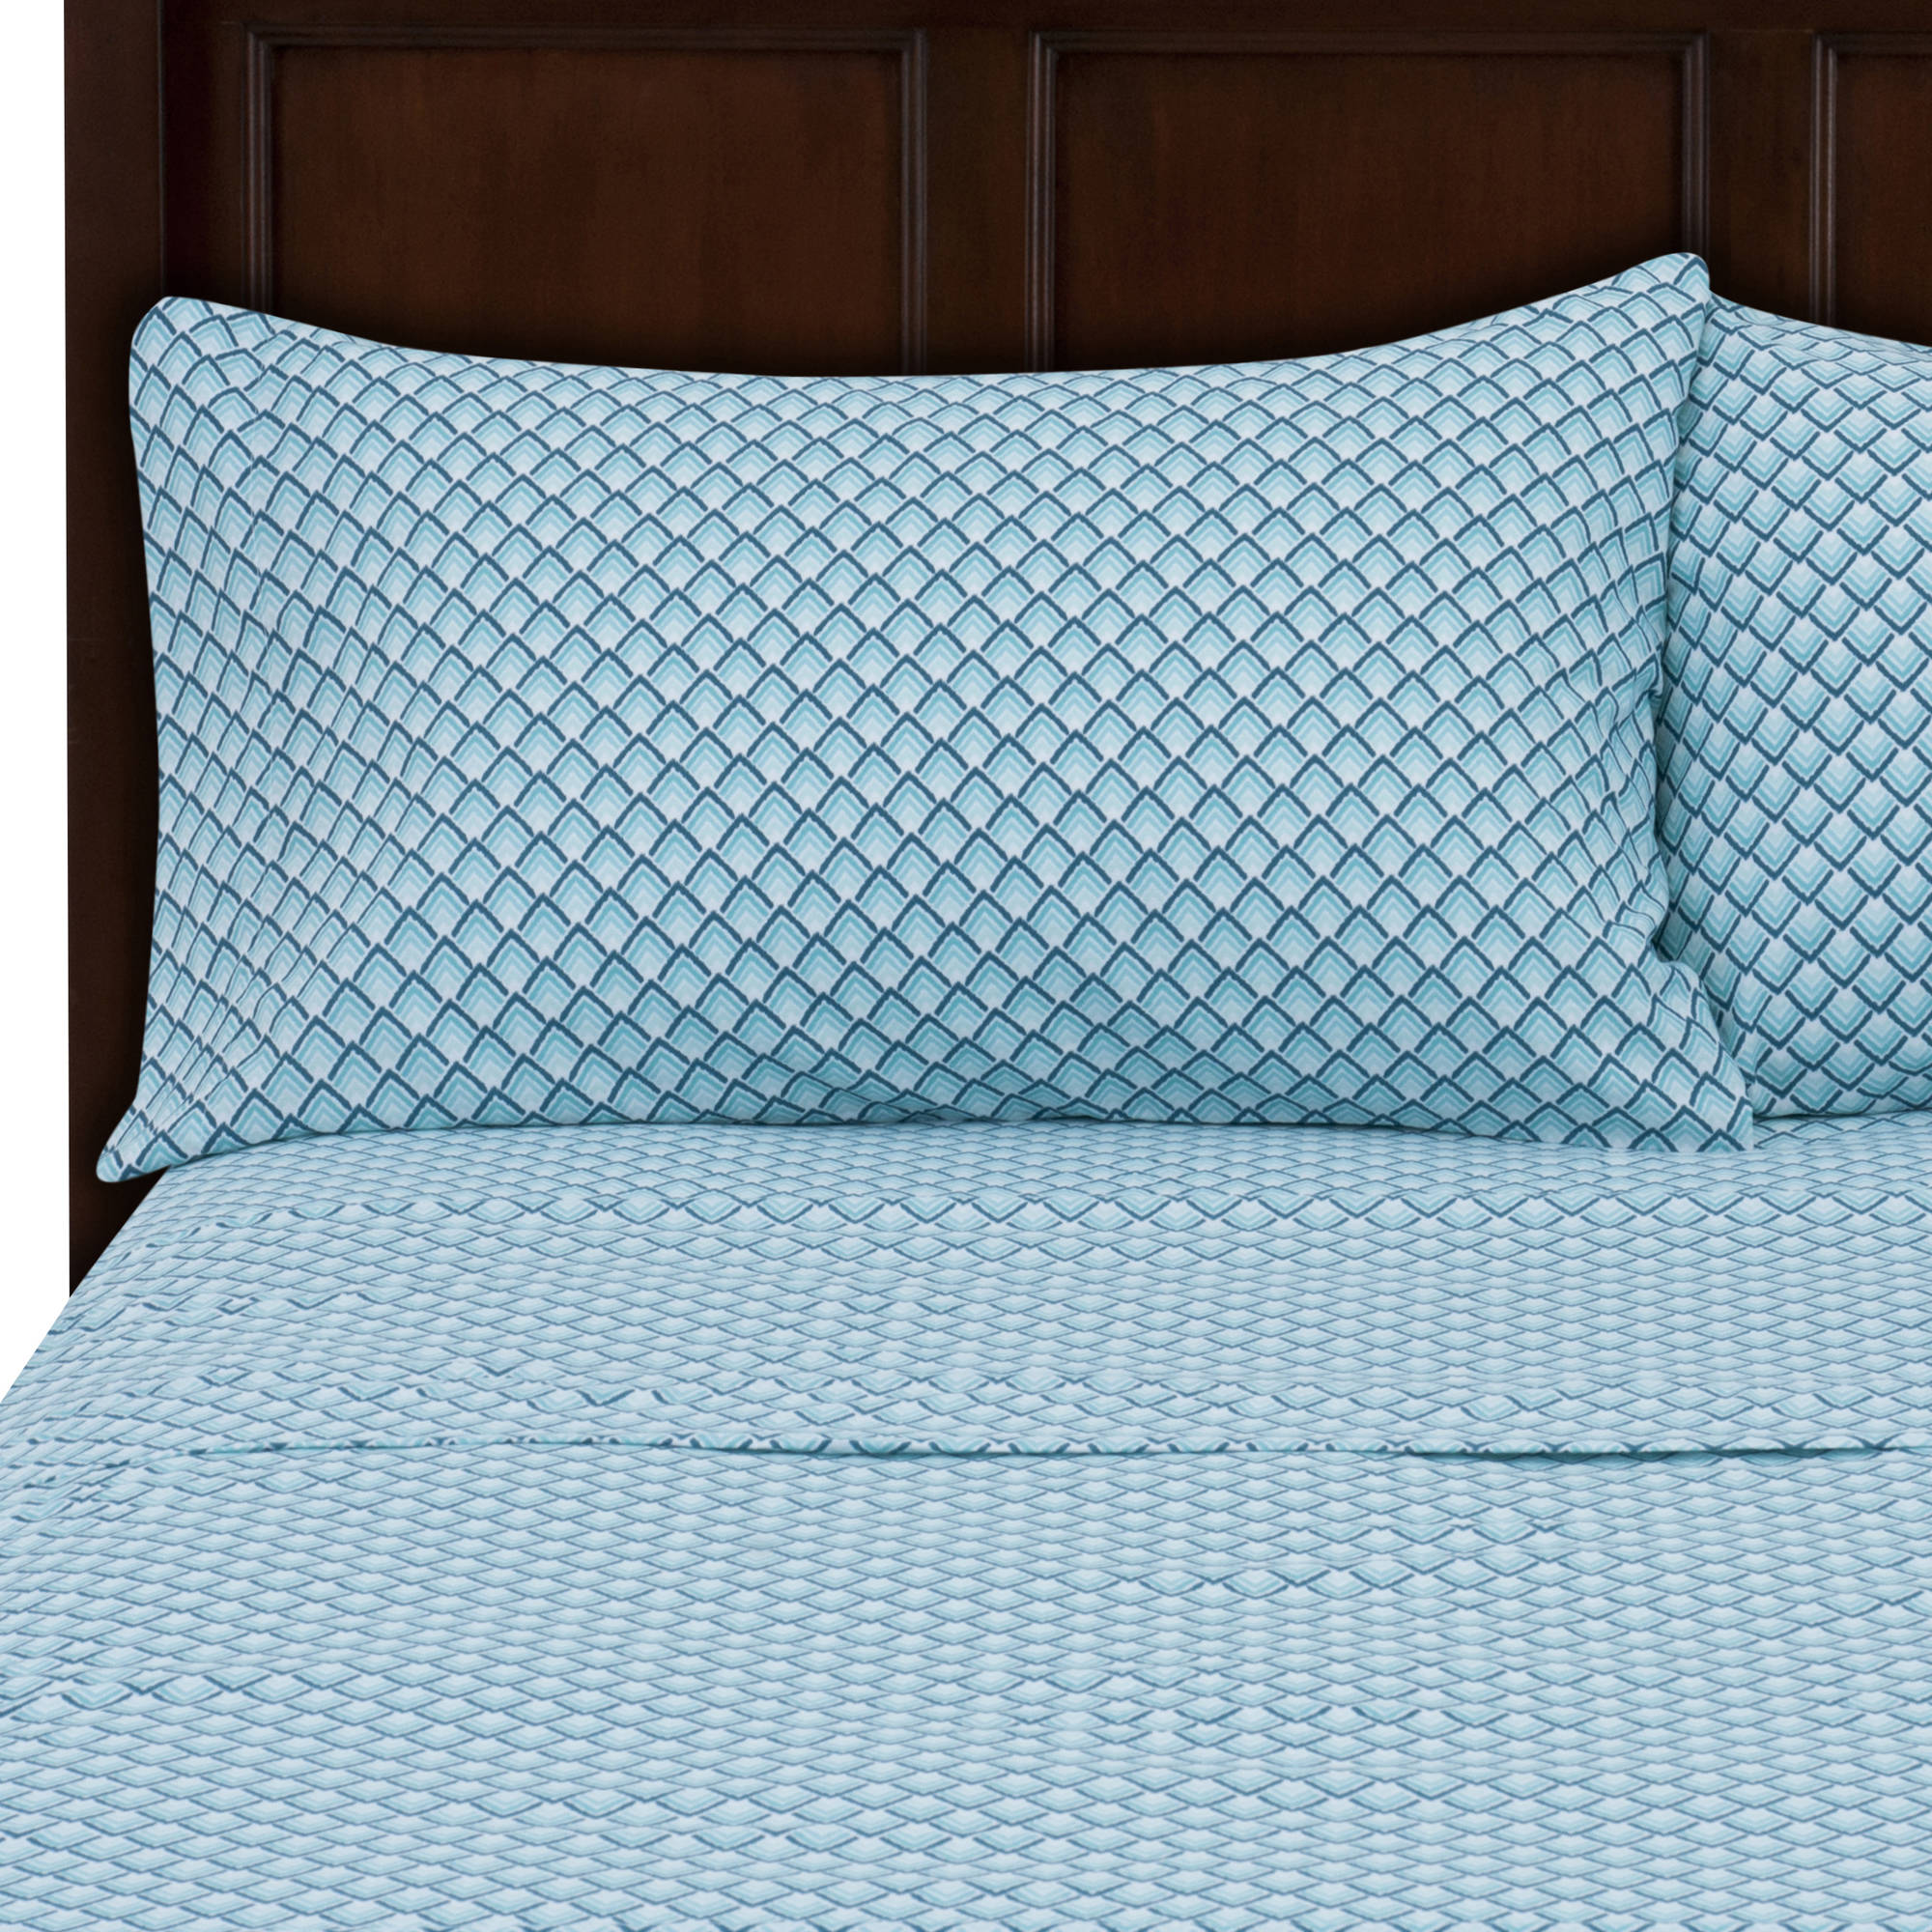 Mainstays 200 Thread Count Pillowcase Collection, Open Stock